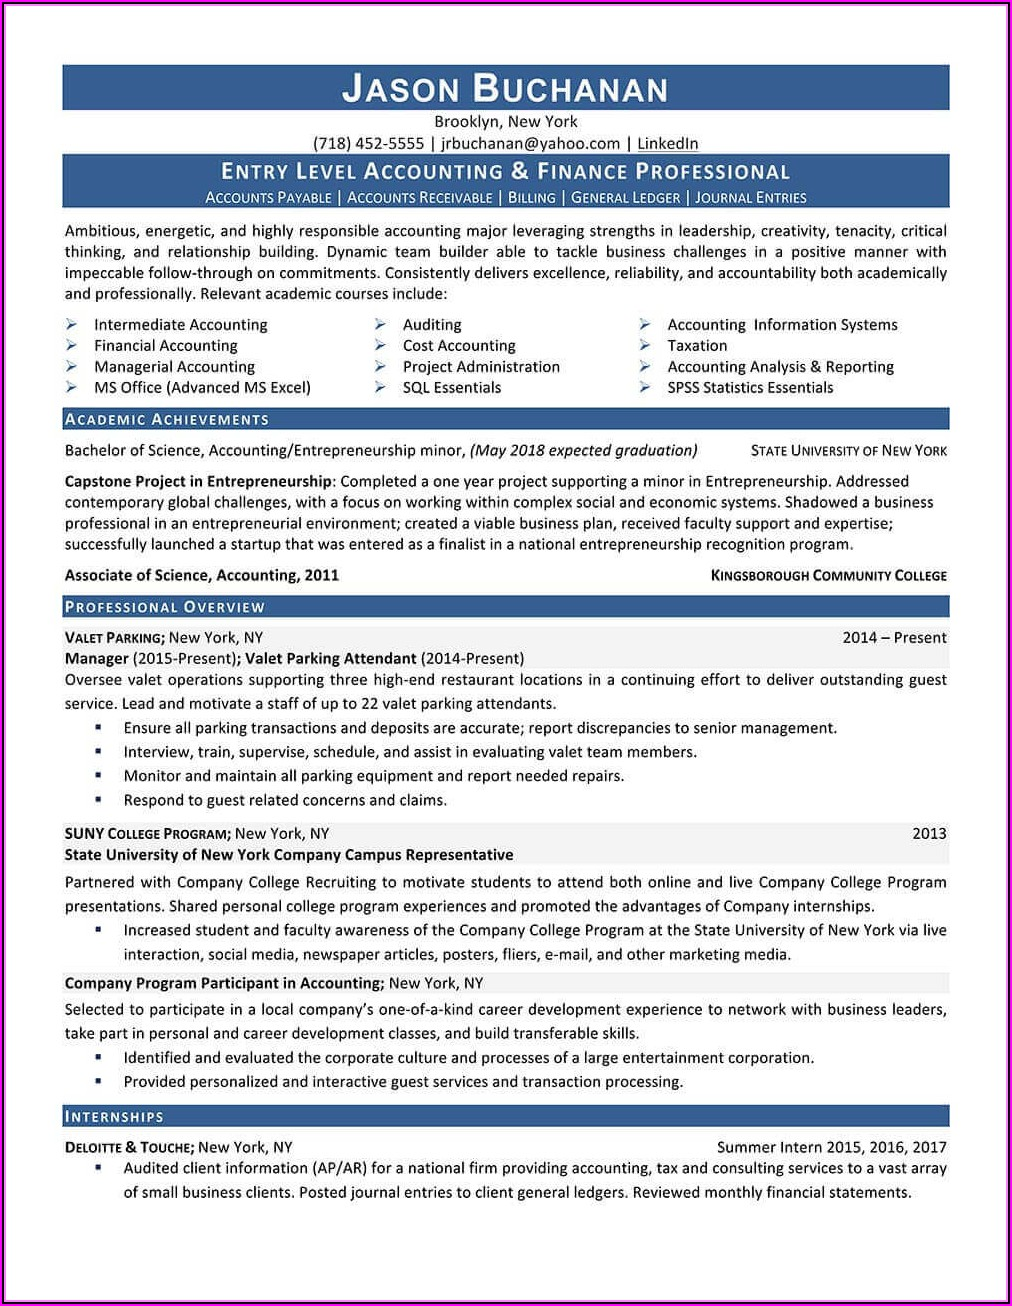 Monster Resume Writing Service Discount